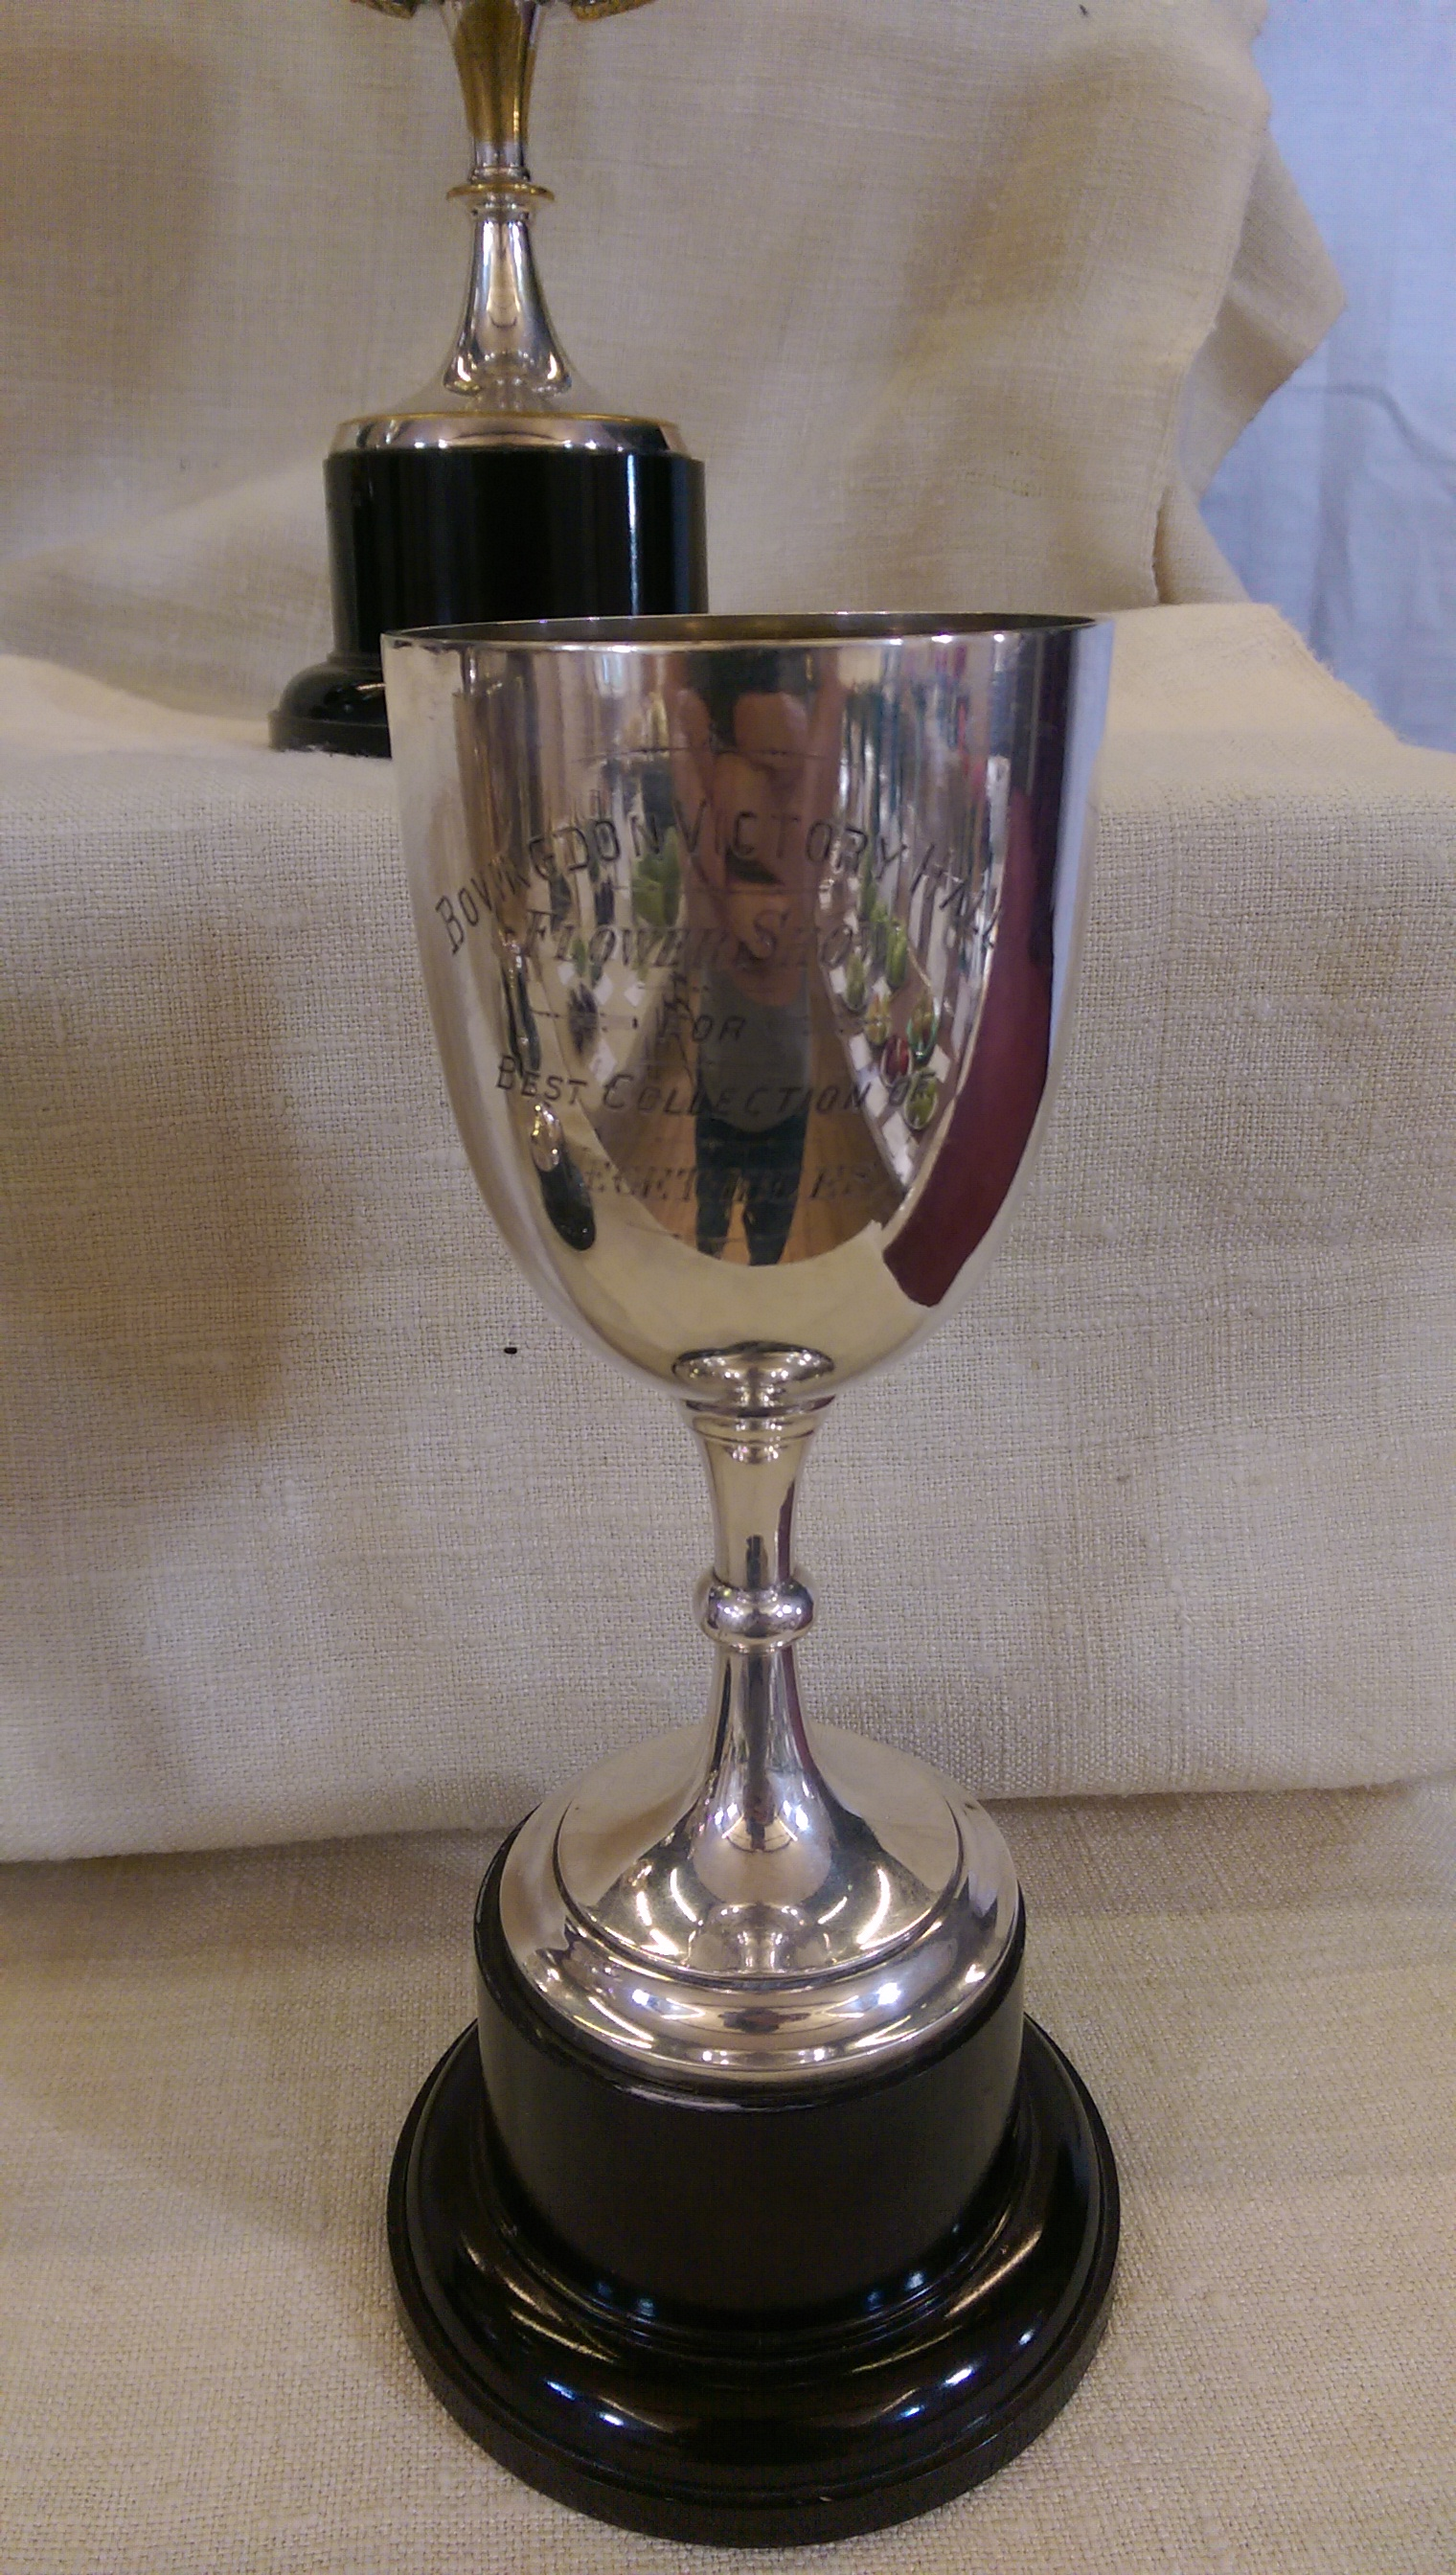 VICTORY HALL CUP